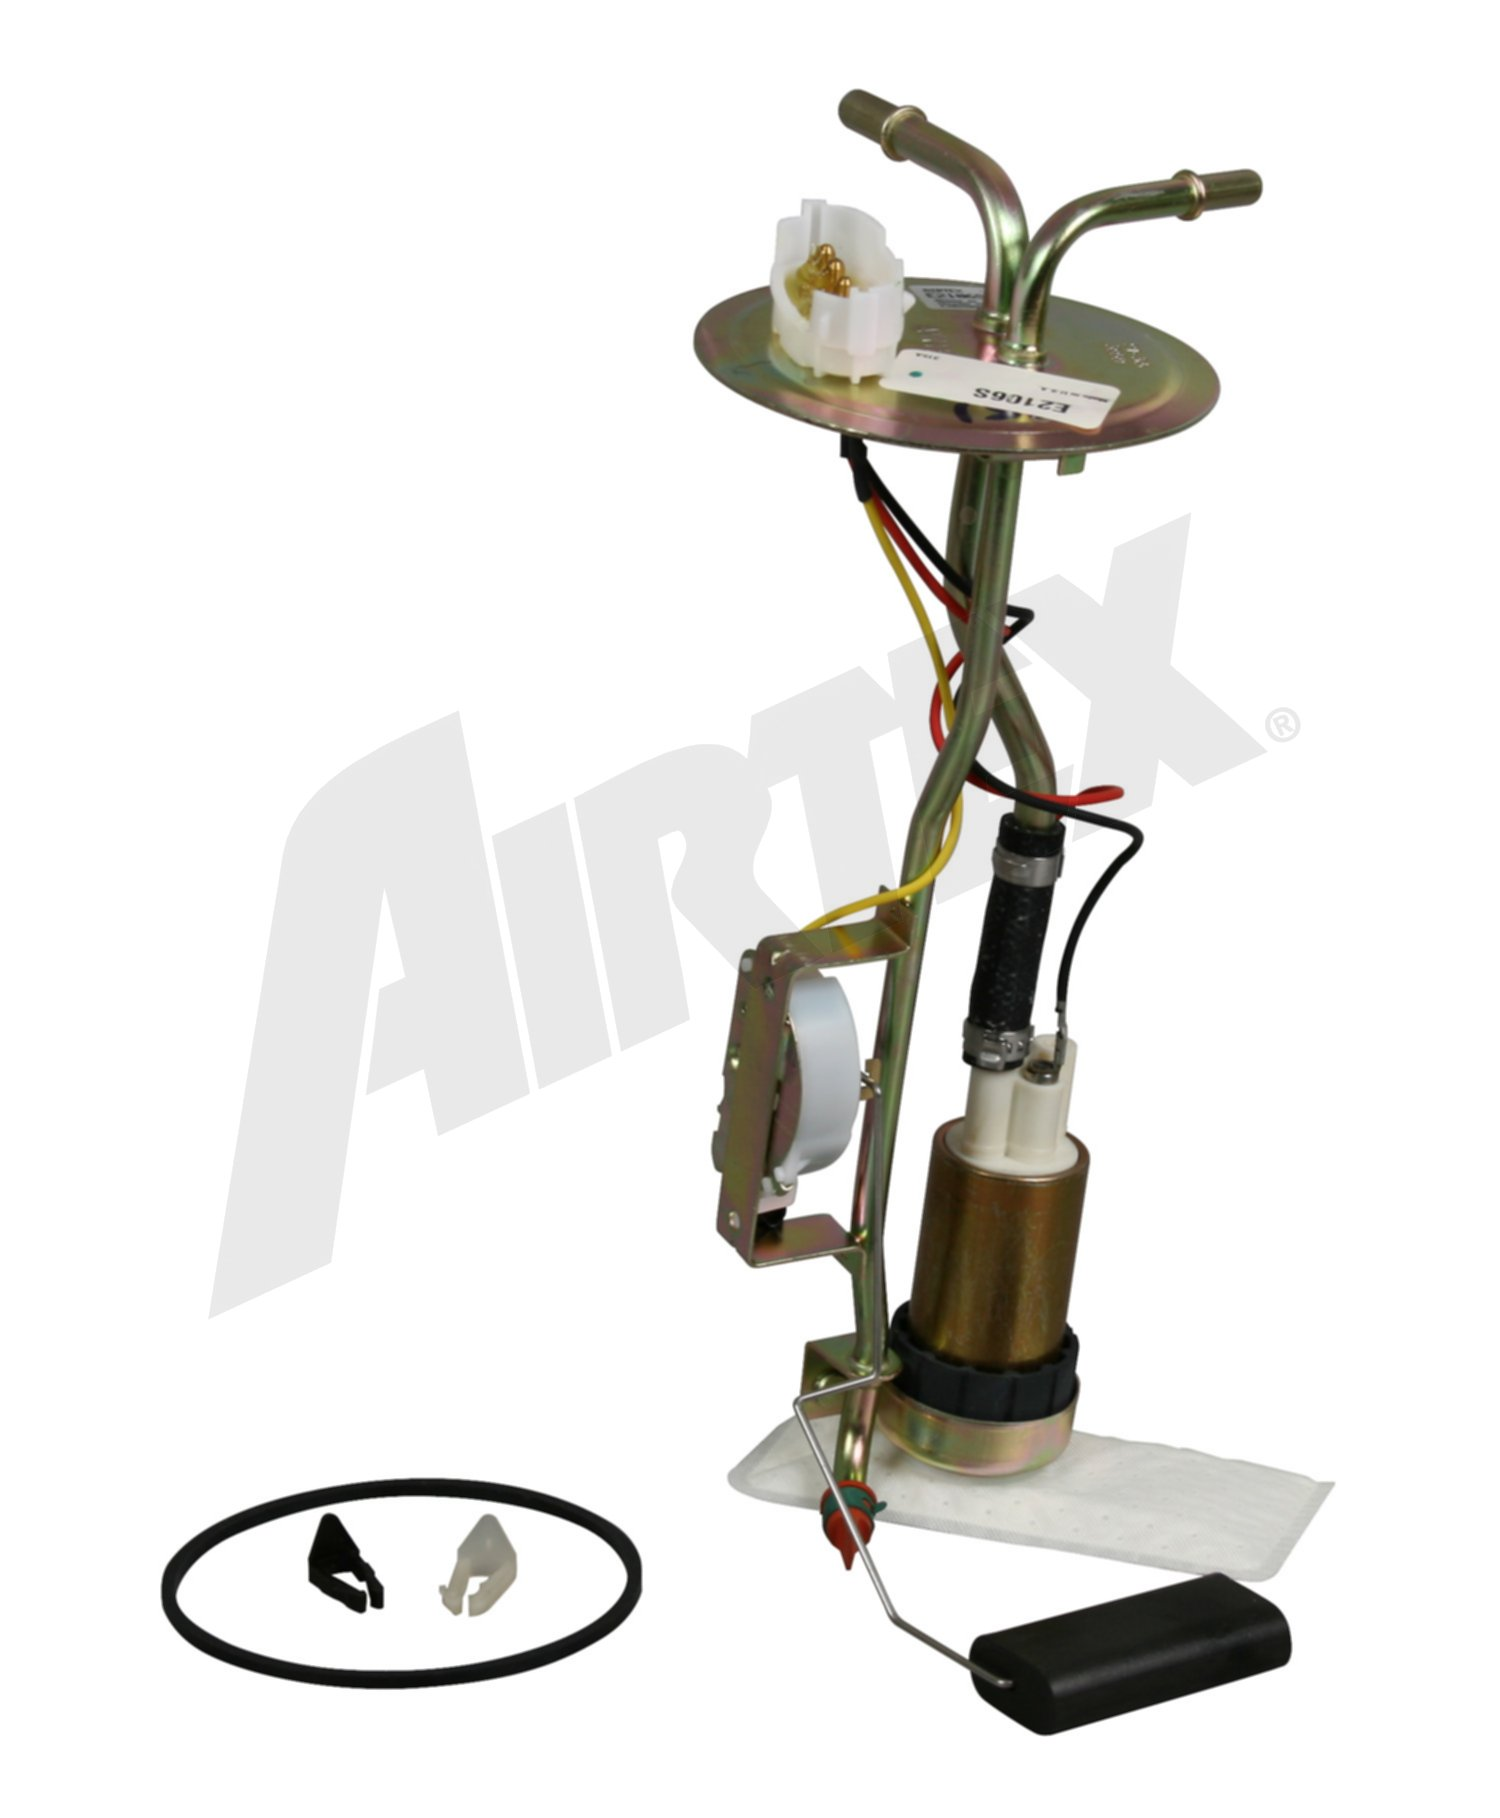 Image of Airtex Fuel Pumps E2106S Fuel Pump and Sender Assembly Fits 1990-1997 Ford Ranger